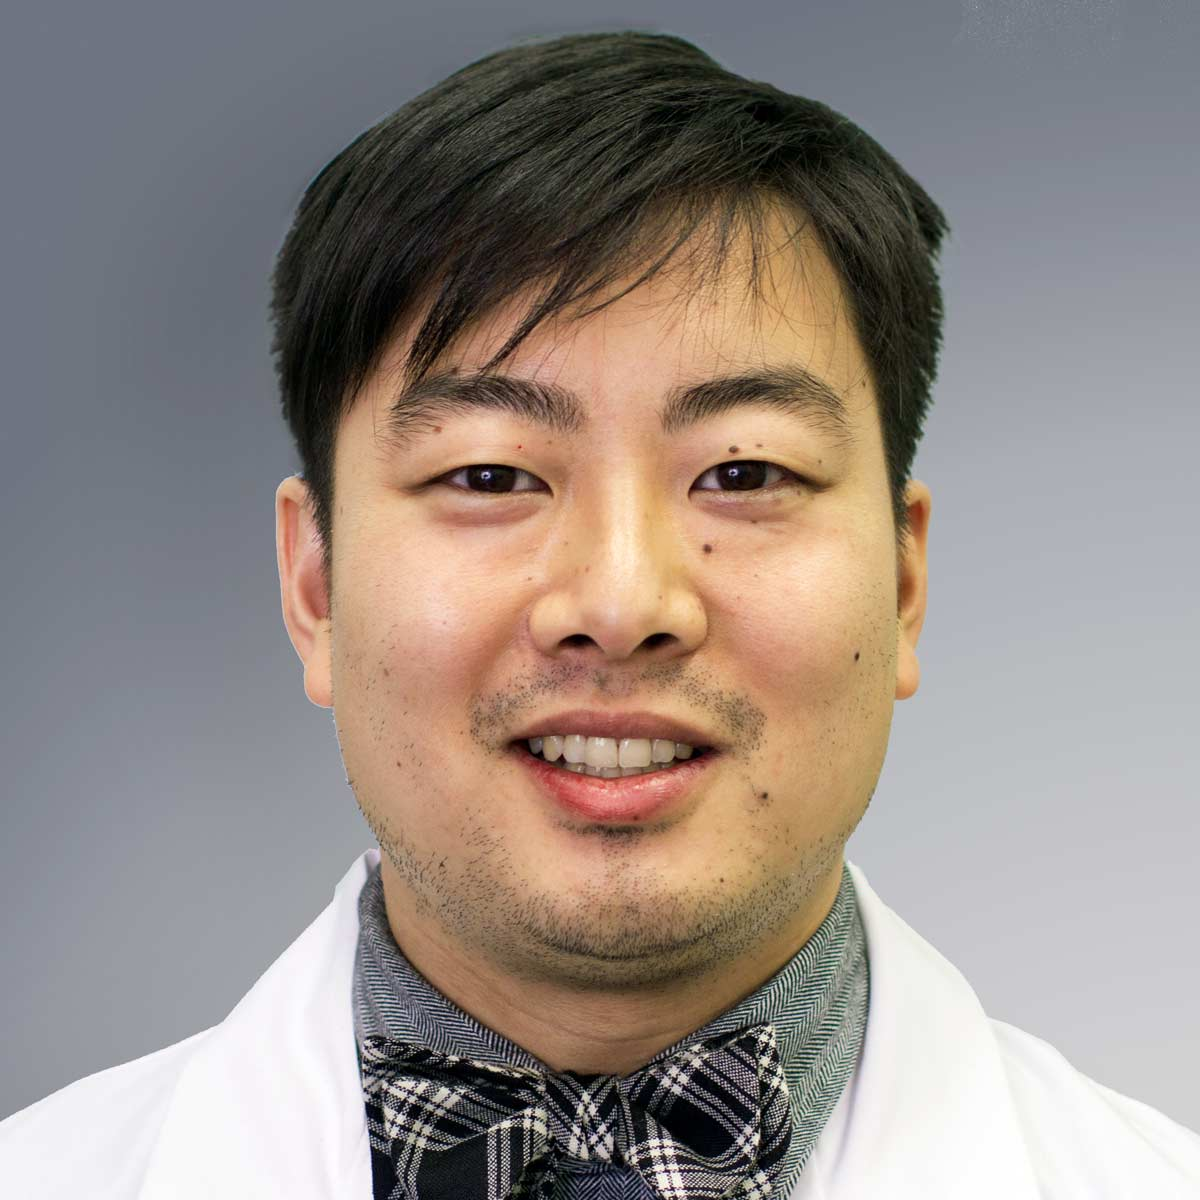 Albert Ahn at [NYU Langone Medical Center]